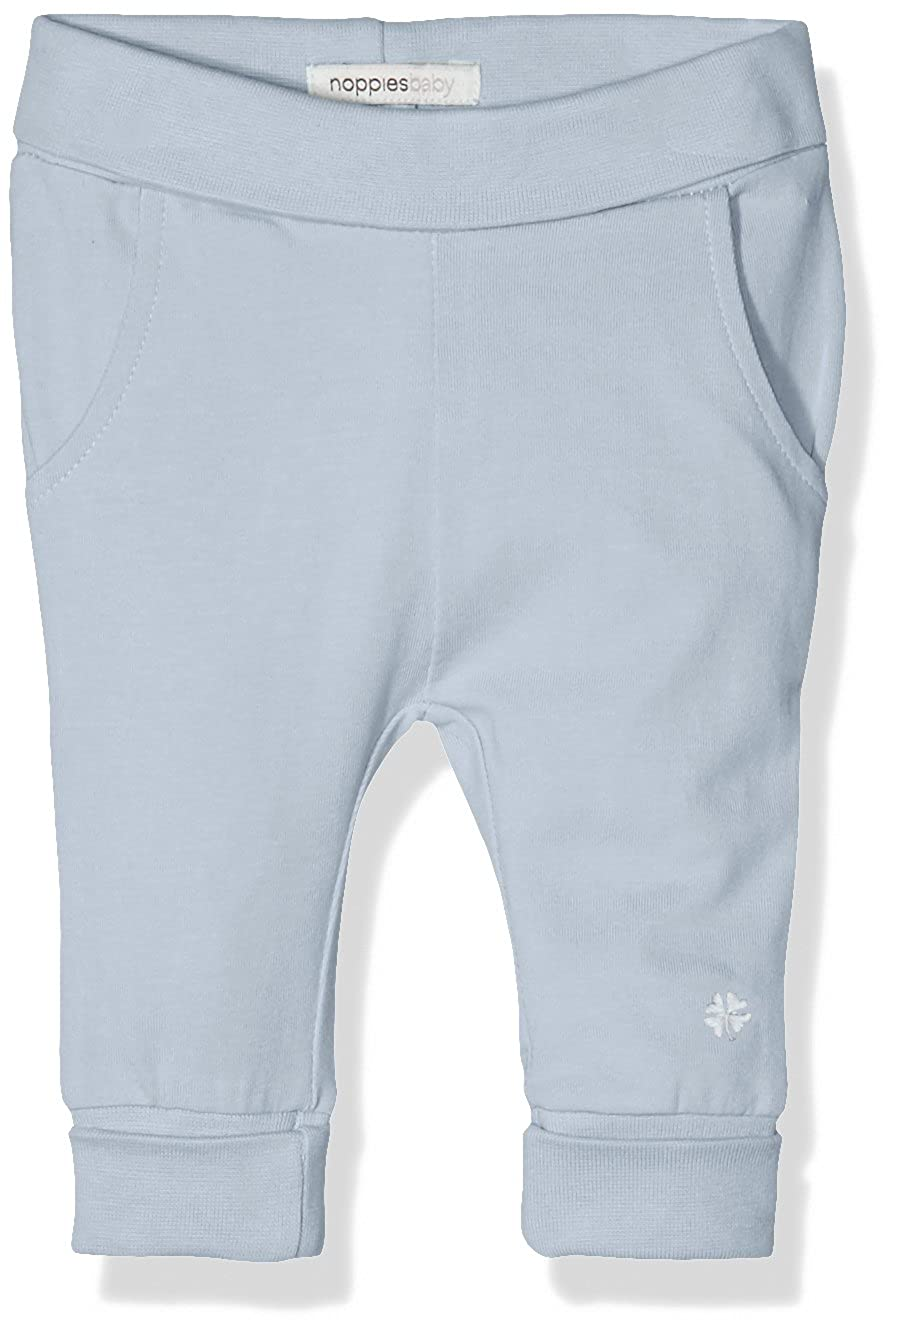 Noppies Baby Trousers 67307